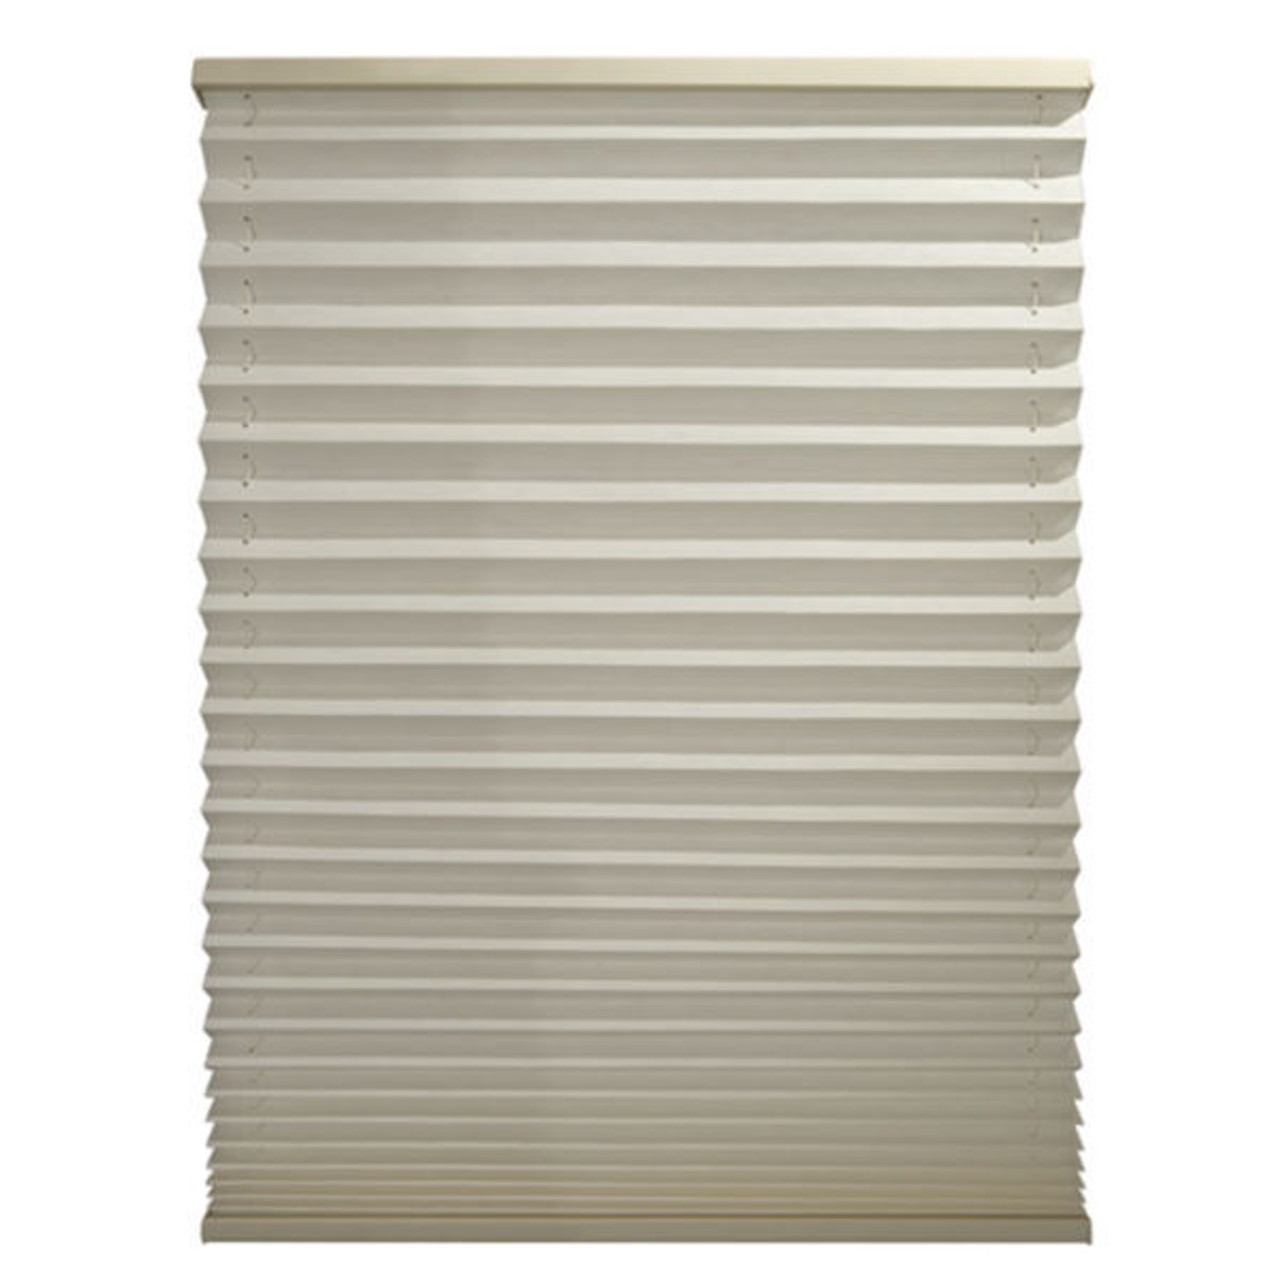 TH Pleated Day Night Shades